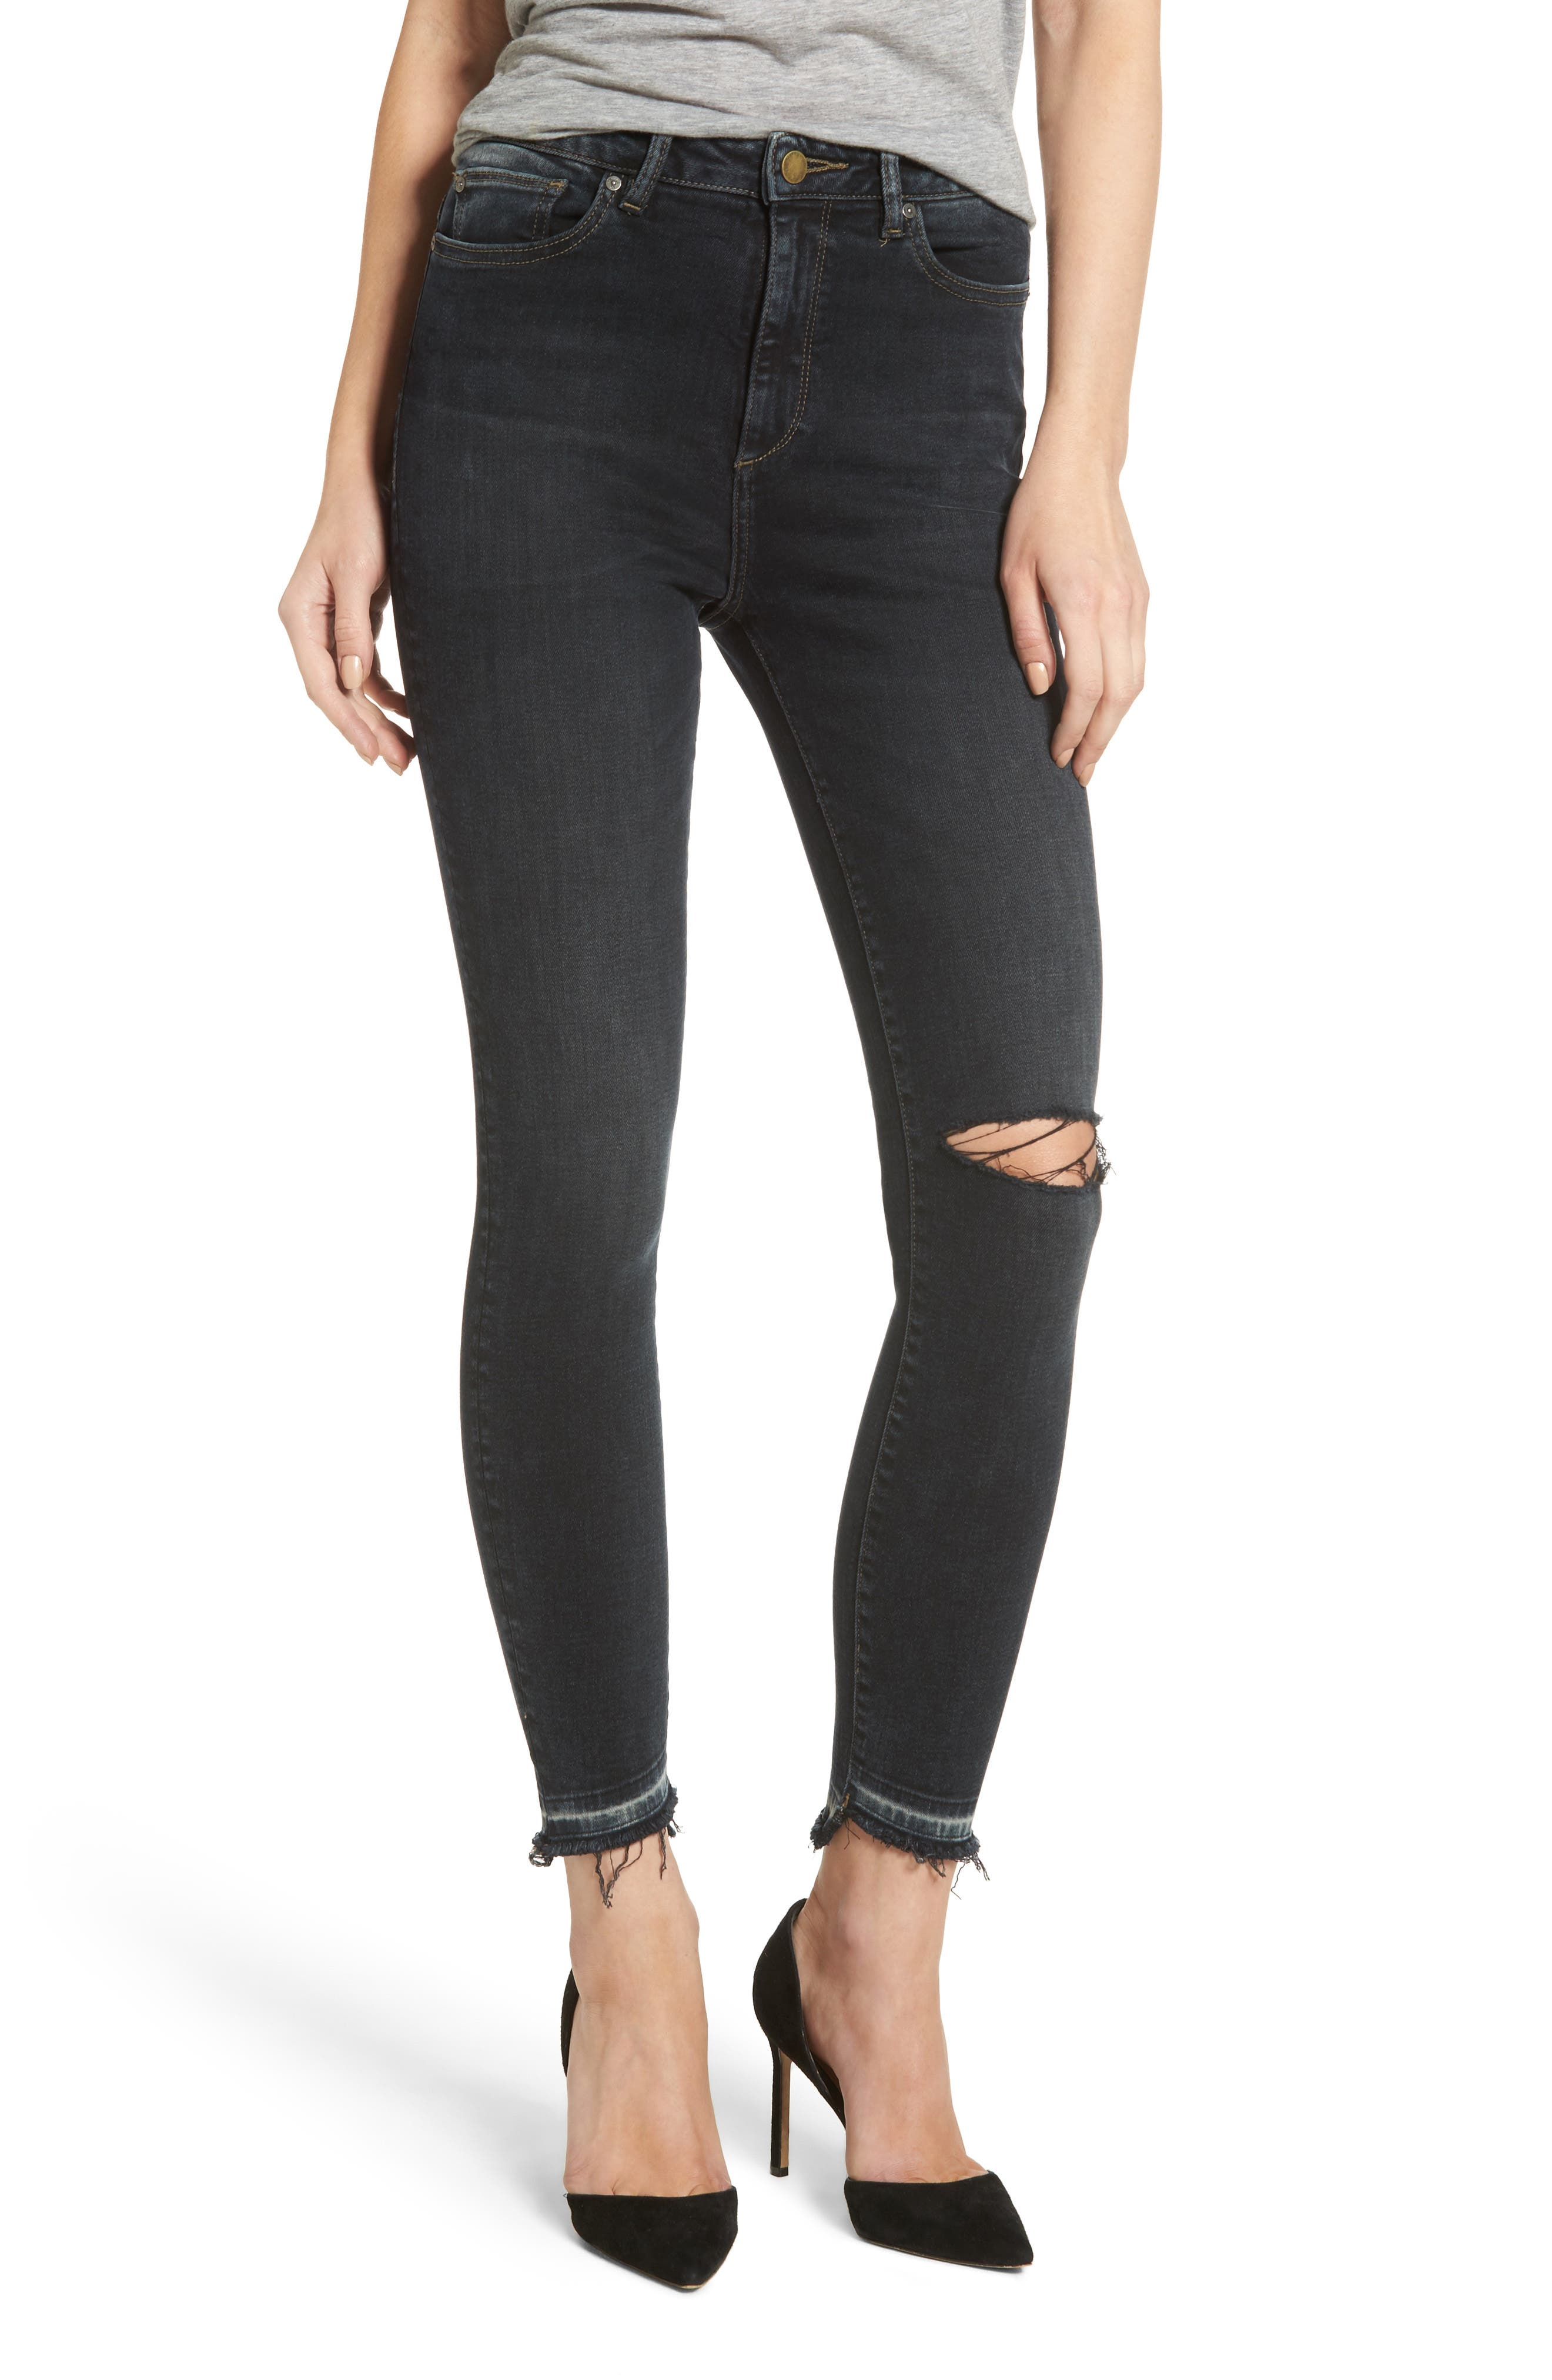 DL1961 Chrissy High Waist Ankle Skinny Jeans (Grizzly)